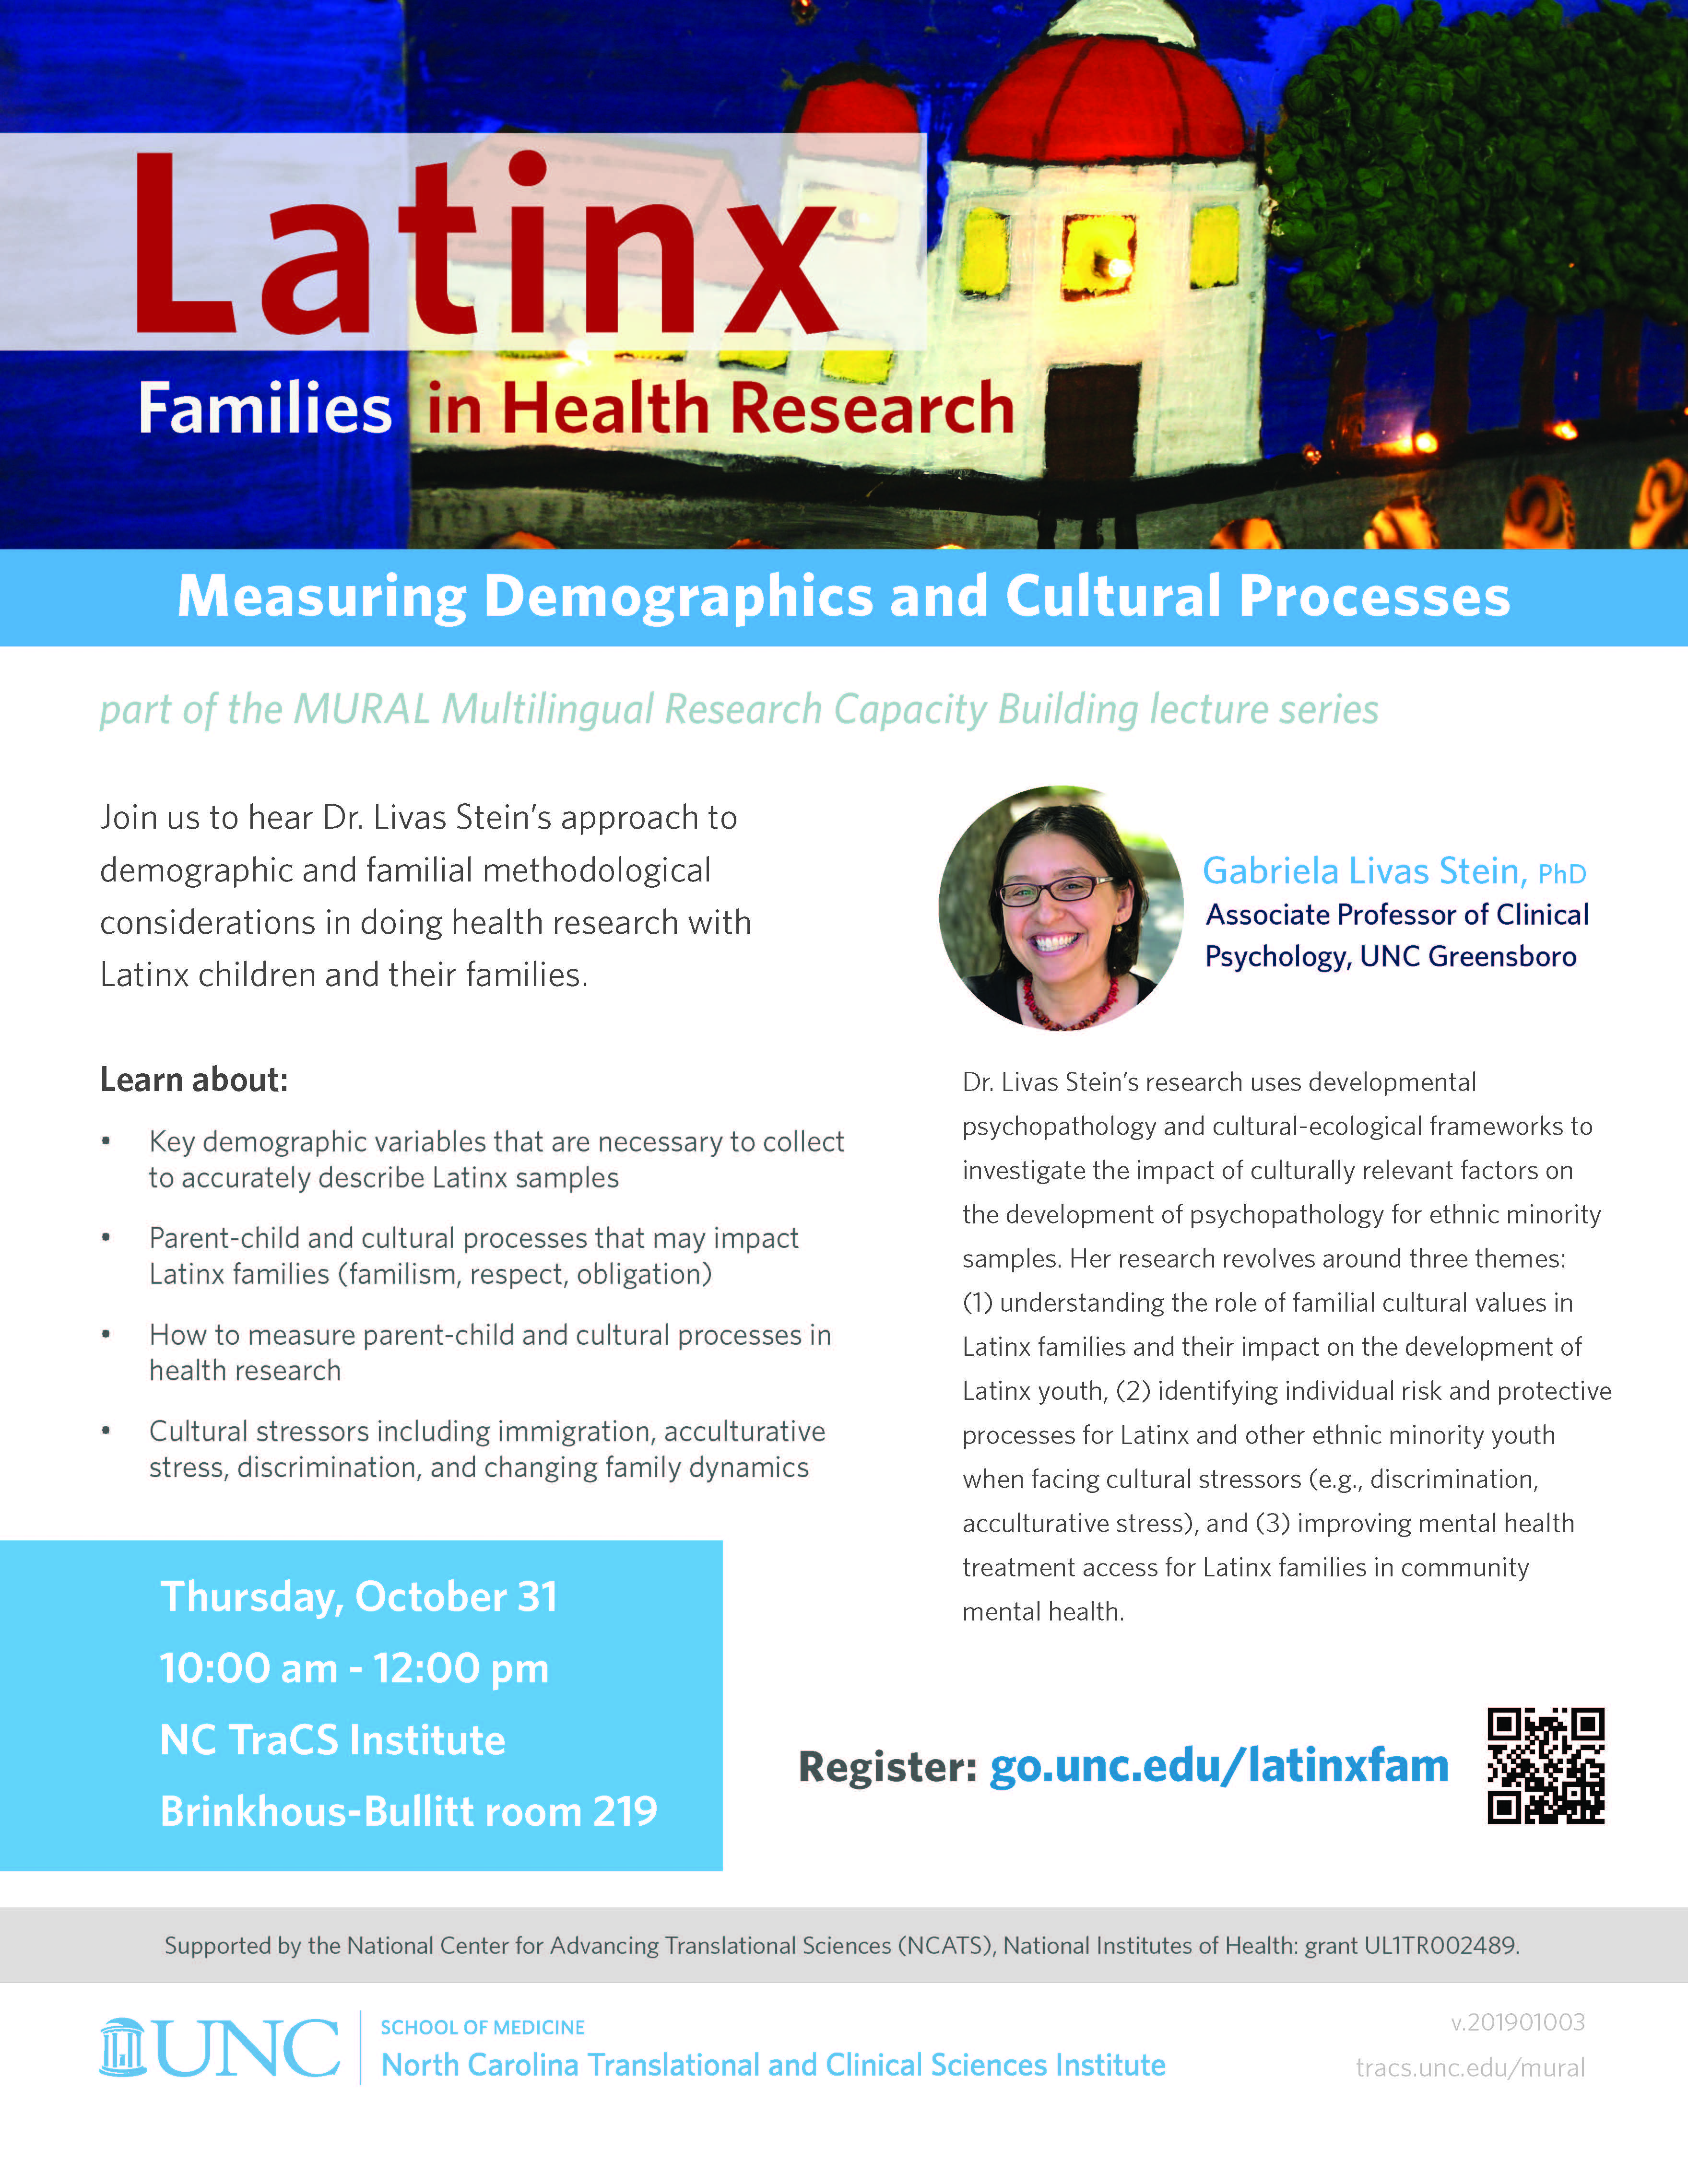 MURAL Multilingual Research Capacity Building Lecture Series: Latinx Families in Health Research